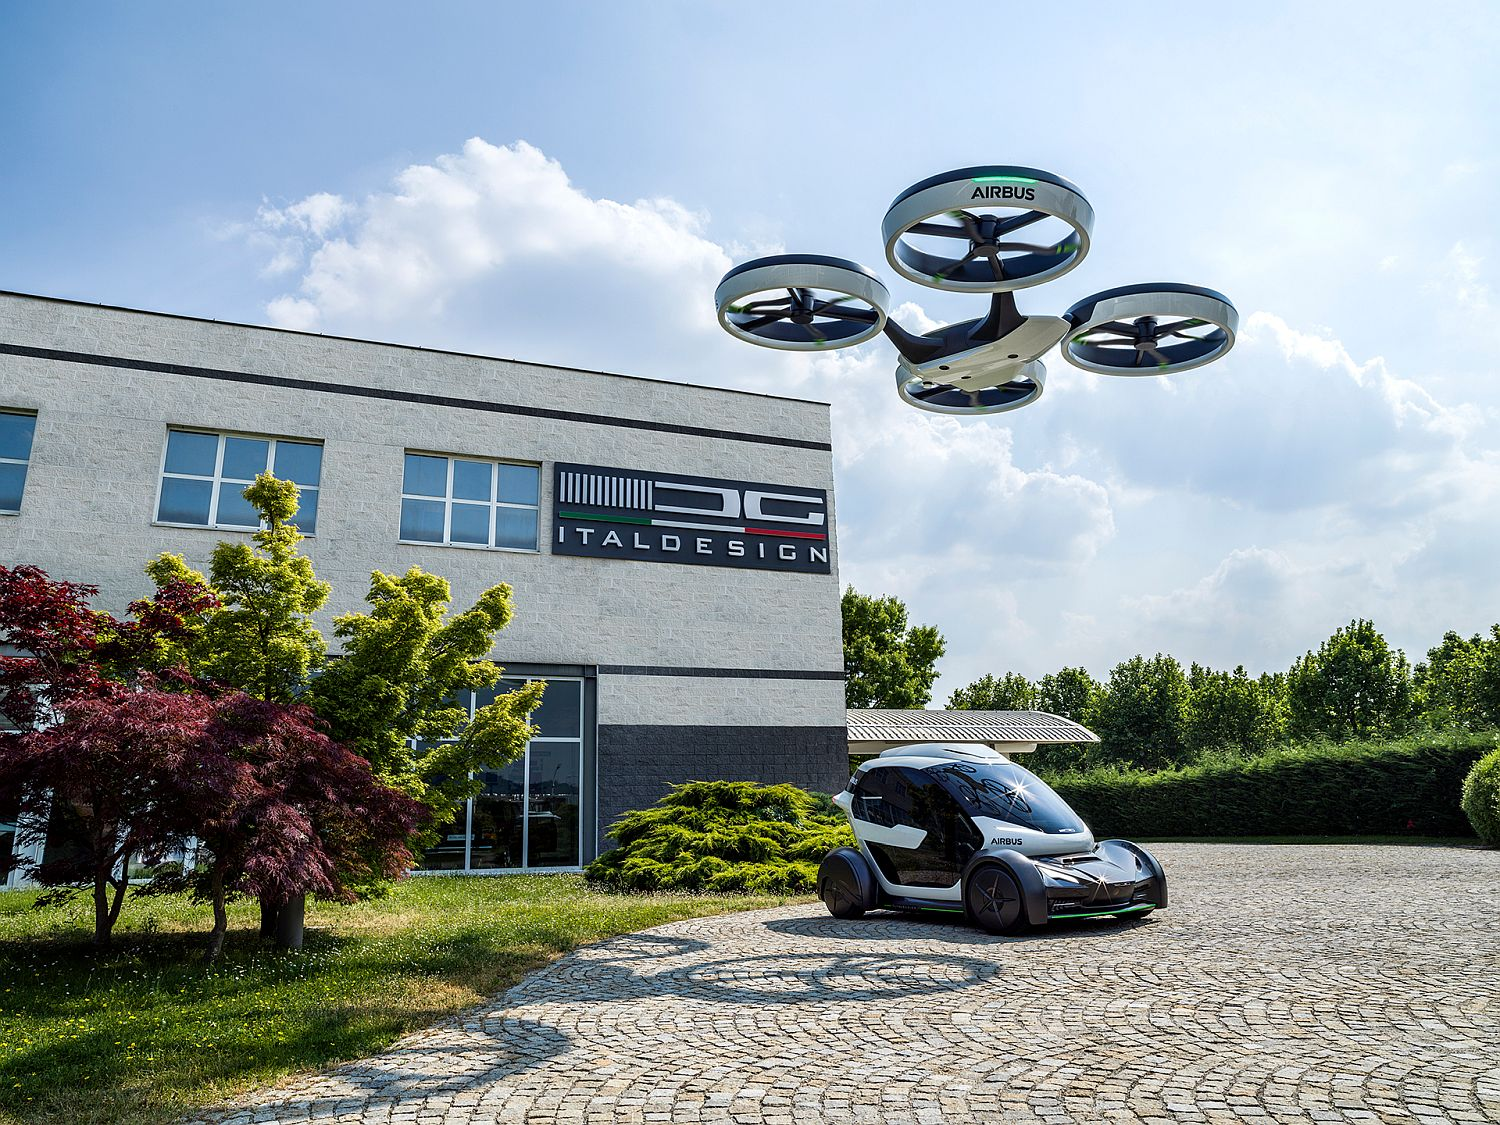 Flugtaxis Flugtaxi Drohne